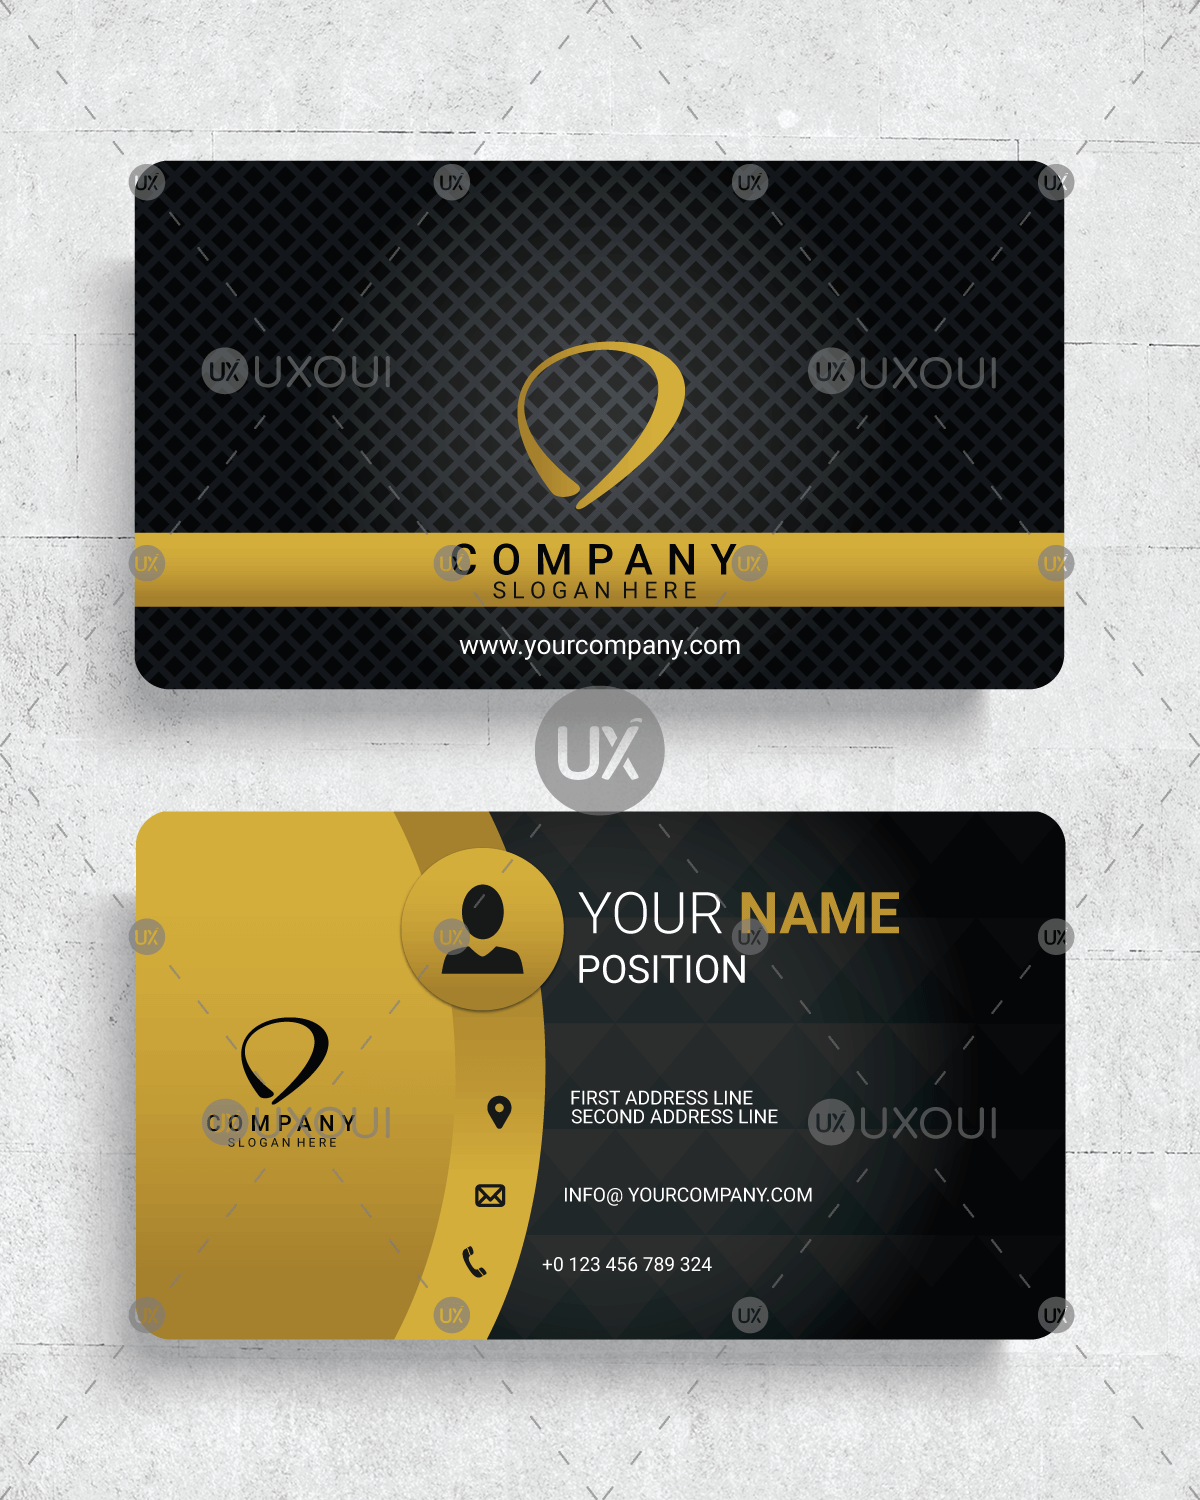 Premium luxury business card design template vector with black premium luxury business card design template maxwellsz